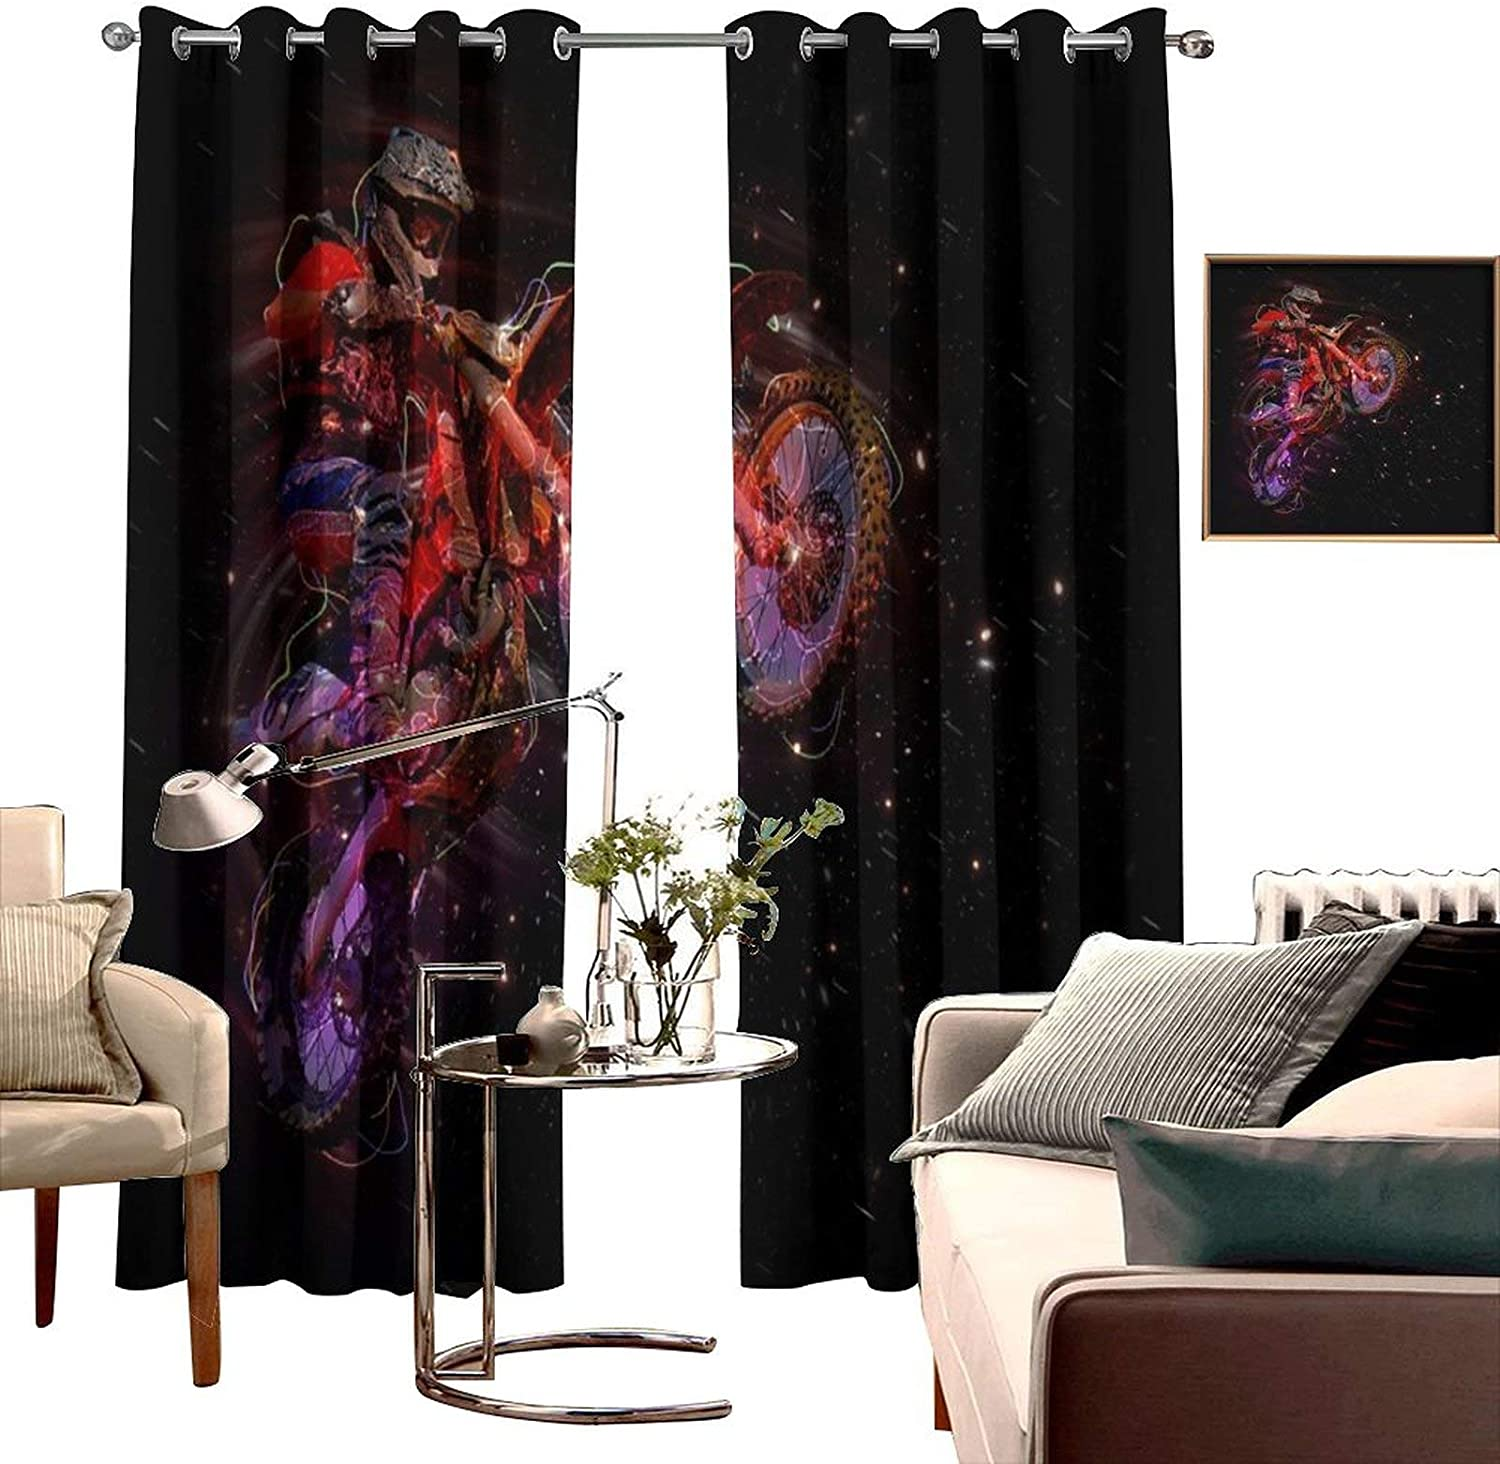 CRANEKEY 3D PRINTED ROOM DARKENED INSULATION GROMMET CURTAIN MOTORBIKE BIKER RACE SPEED MOTORCYCLIST MOTORCYCLE 2 PANELS THREE-LAYER BRAIDED NOISE REDUCTION RING TOP SHADE CURTAIN W100 X L84 INCH